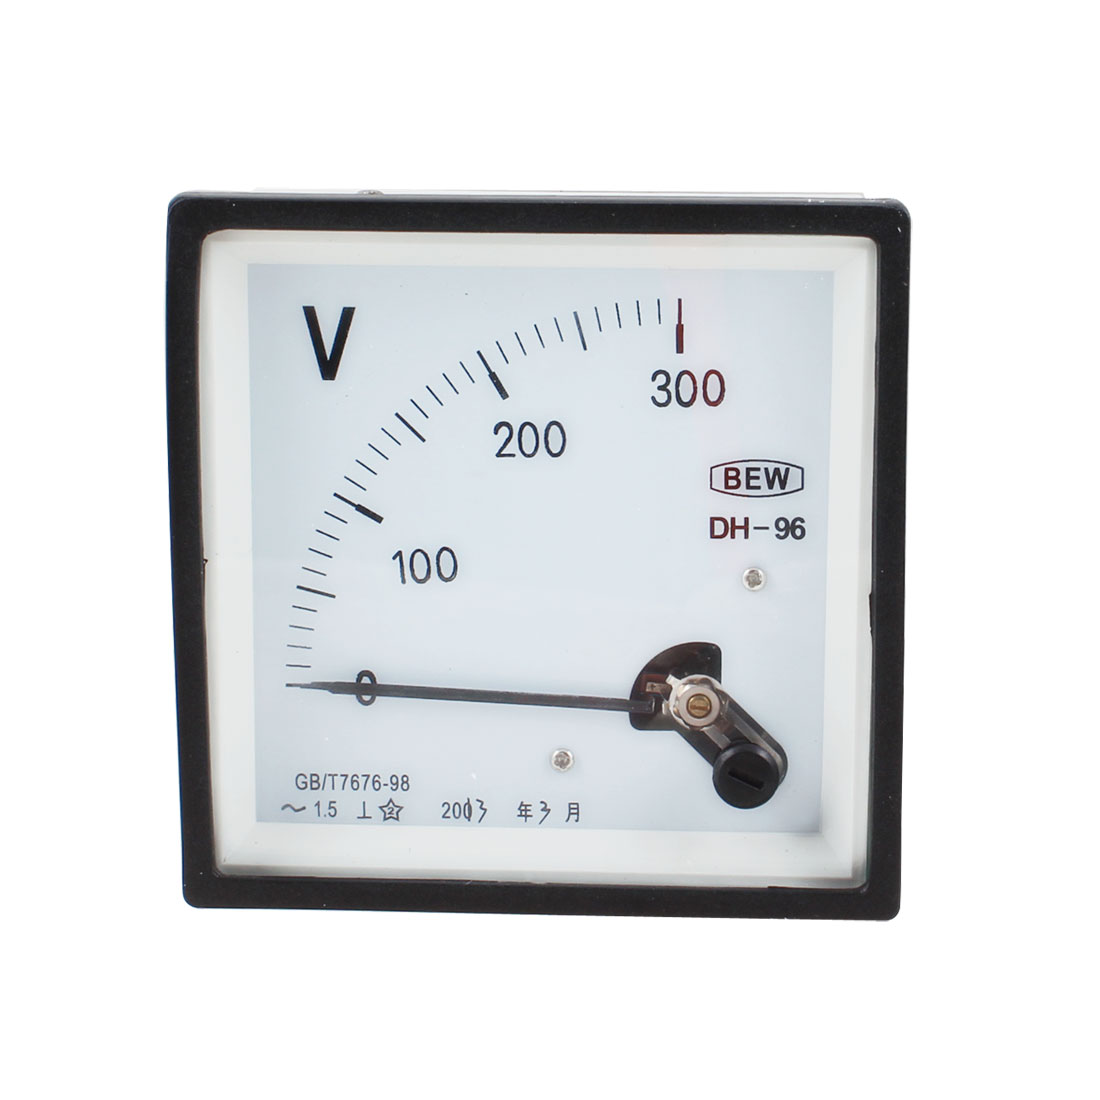 DH96 AC 0-300V Class 1.5 Accuracy Analog Panel Volt Meter Voltmeter Gauge